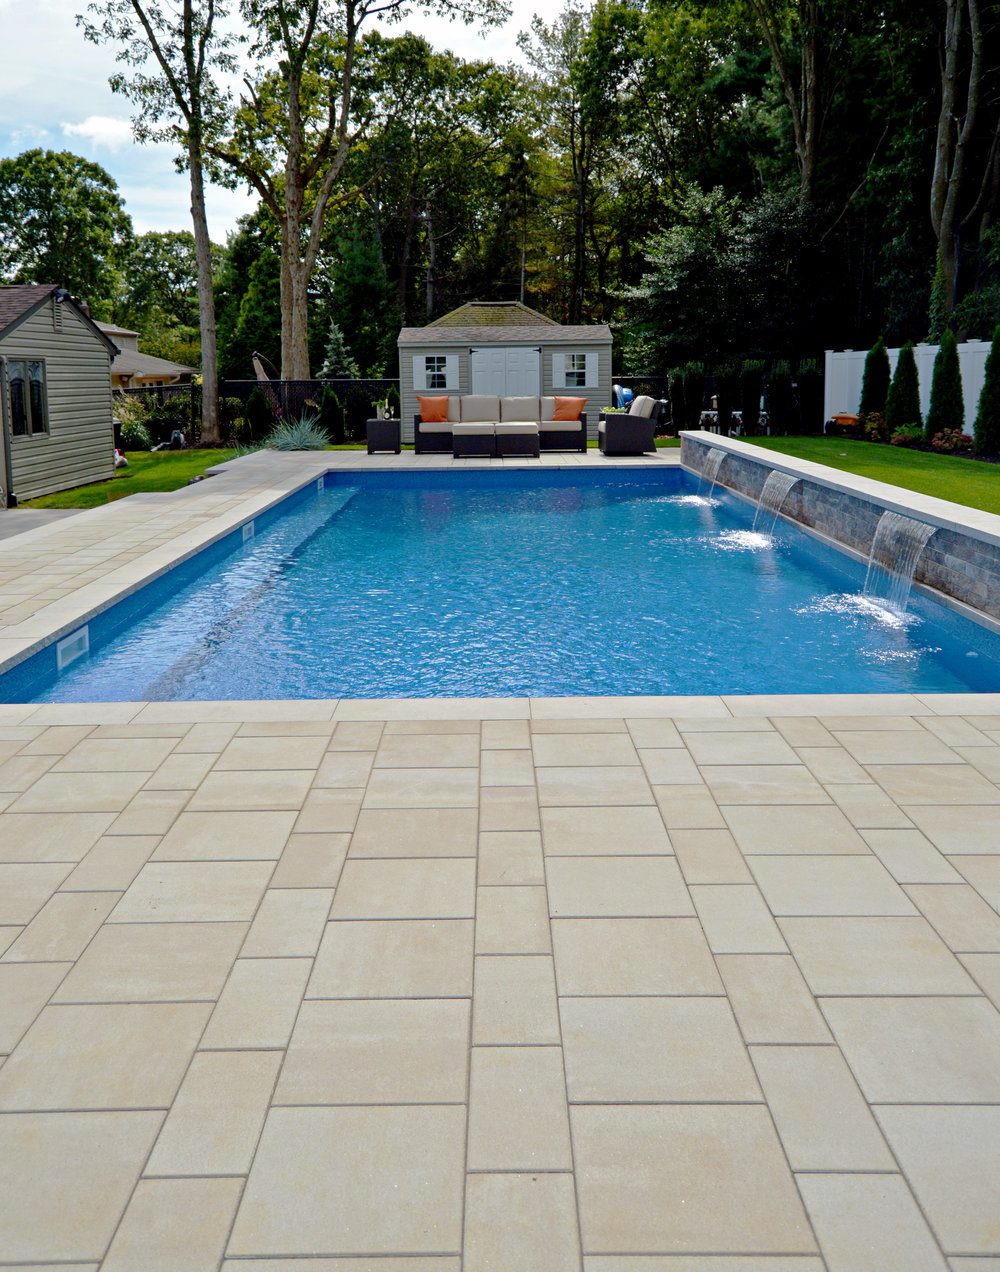 Landscape design with swimming pool in Hauppauge, NY